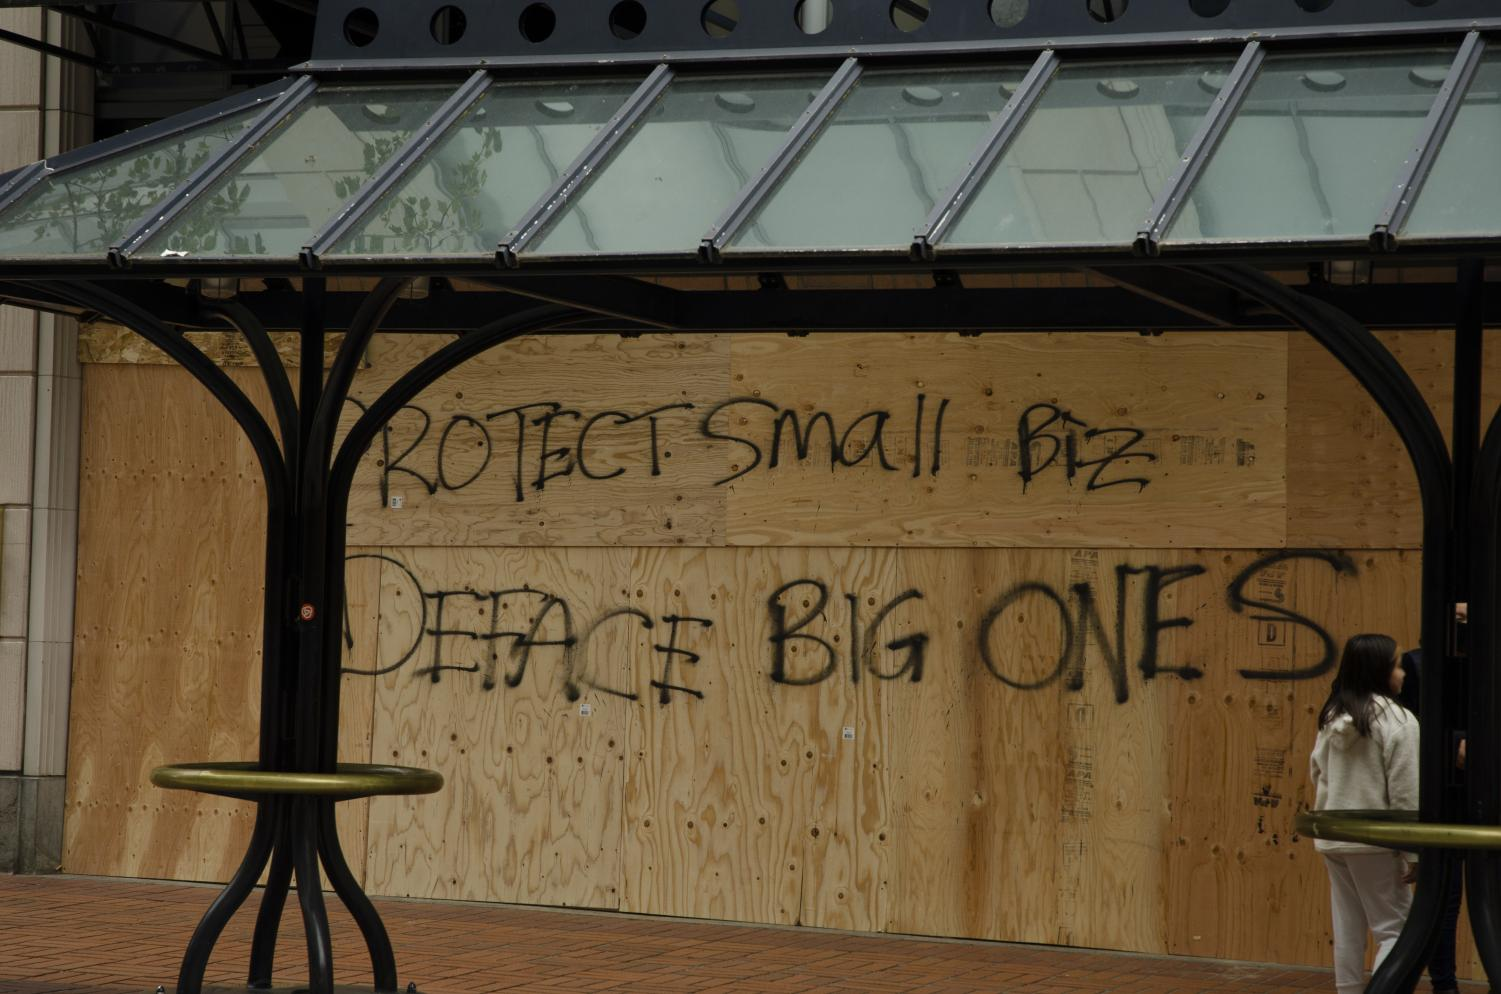 """Graffiti in front of the boarded up Louis Vuitton building reads """"Protect small biz, Deface big one."""""""